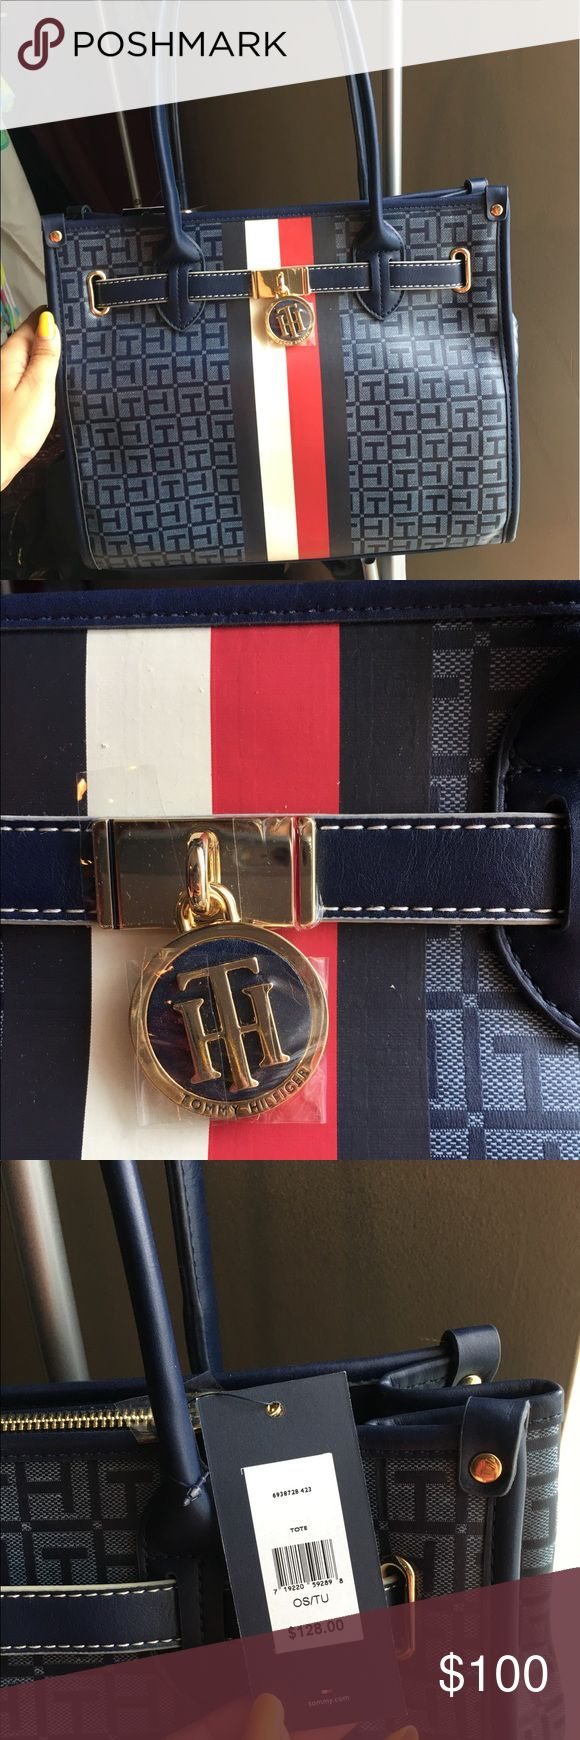 Tommy Hilfiger purse Brand new Tommy Hilfiger purse. Brand new with tags. Willing to bargain price. Tommy Hilfiger Bags